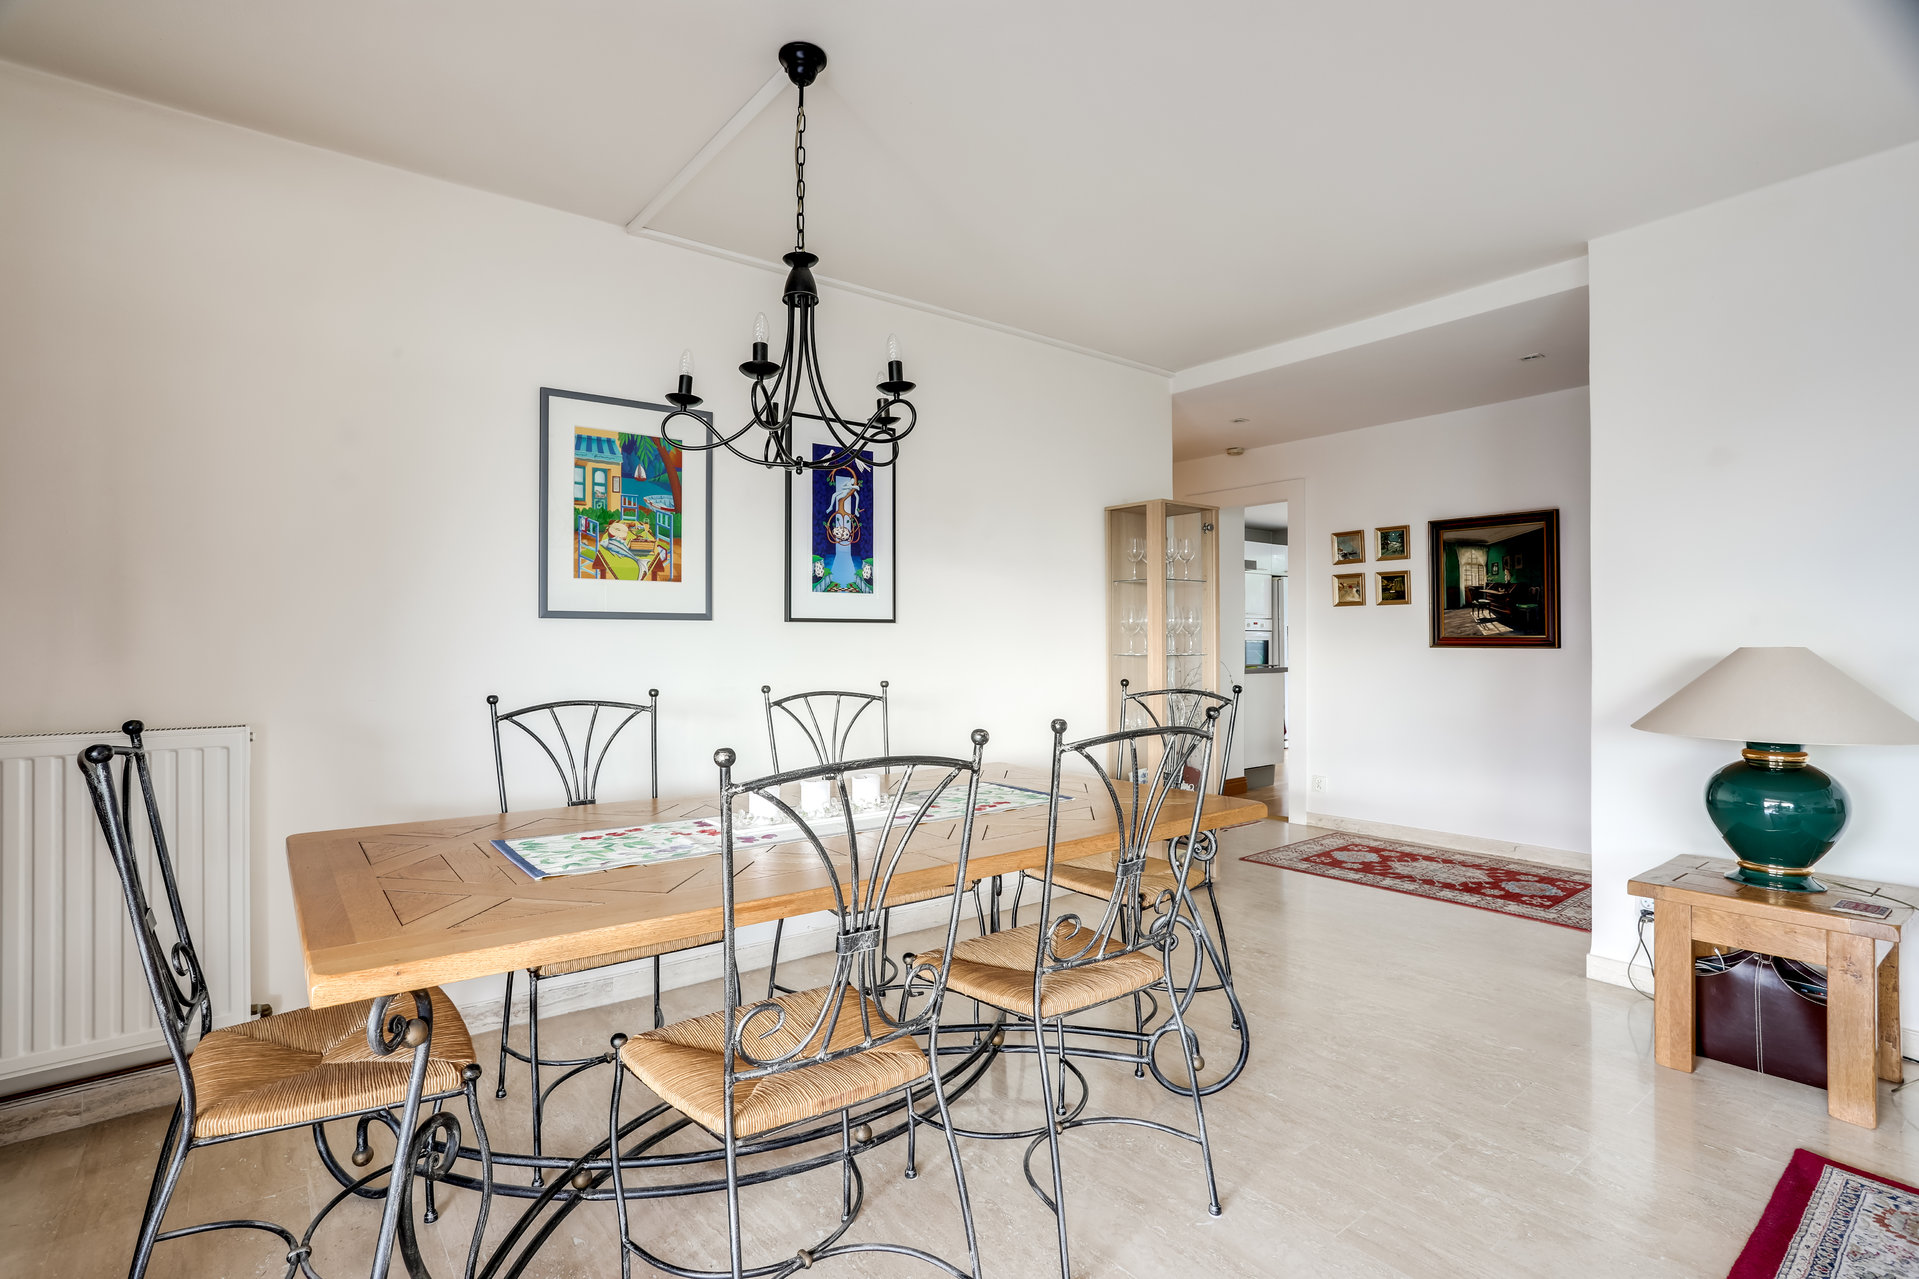 ANTIBES Badine - Sole Agent - 4 rooms apartment with sea view.